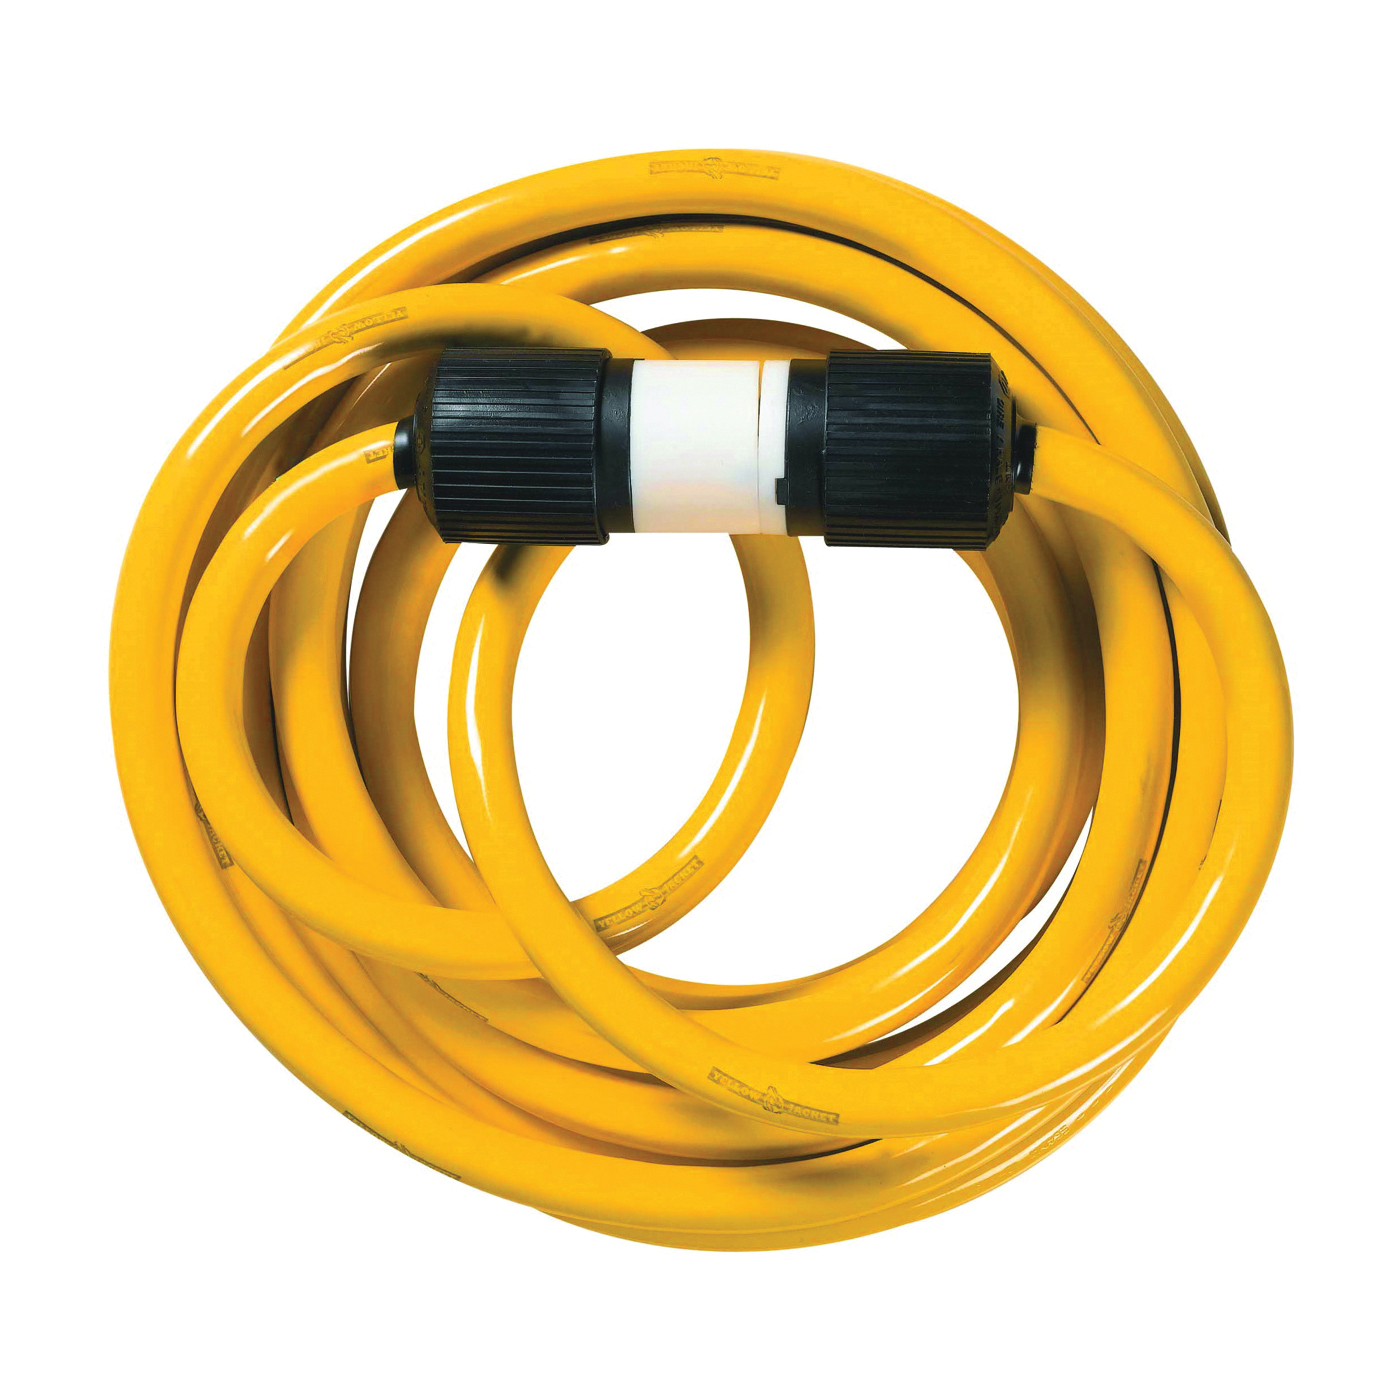 Picture of CCI 1493 Extension Cord, 10 AWG Cable, 25 ft L, 30 A, 125/250 V, Yellow Jacket